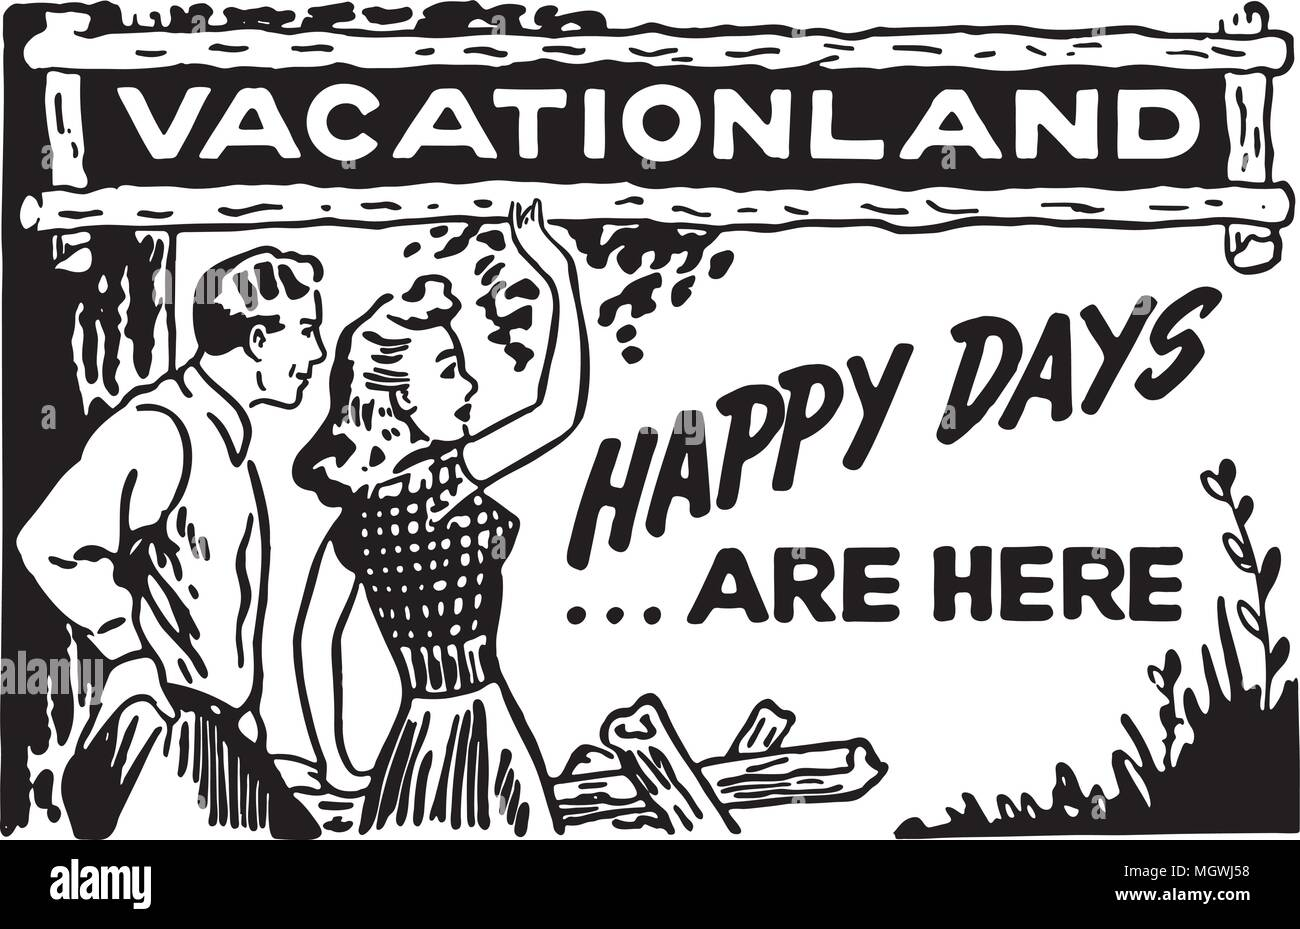 Vacationland - Retro Ad Art Banner - Stock Image